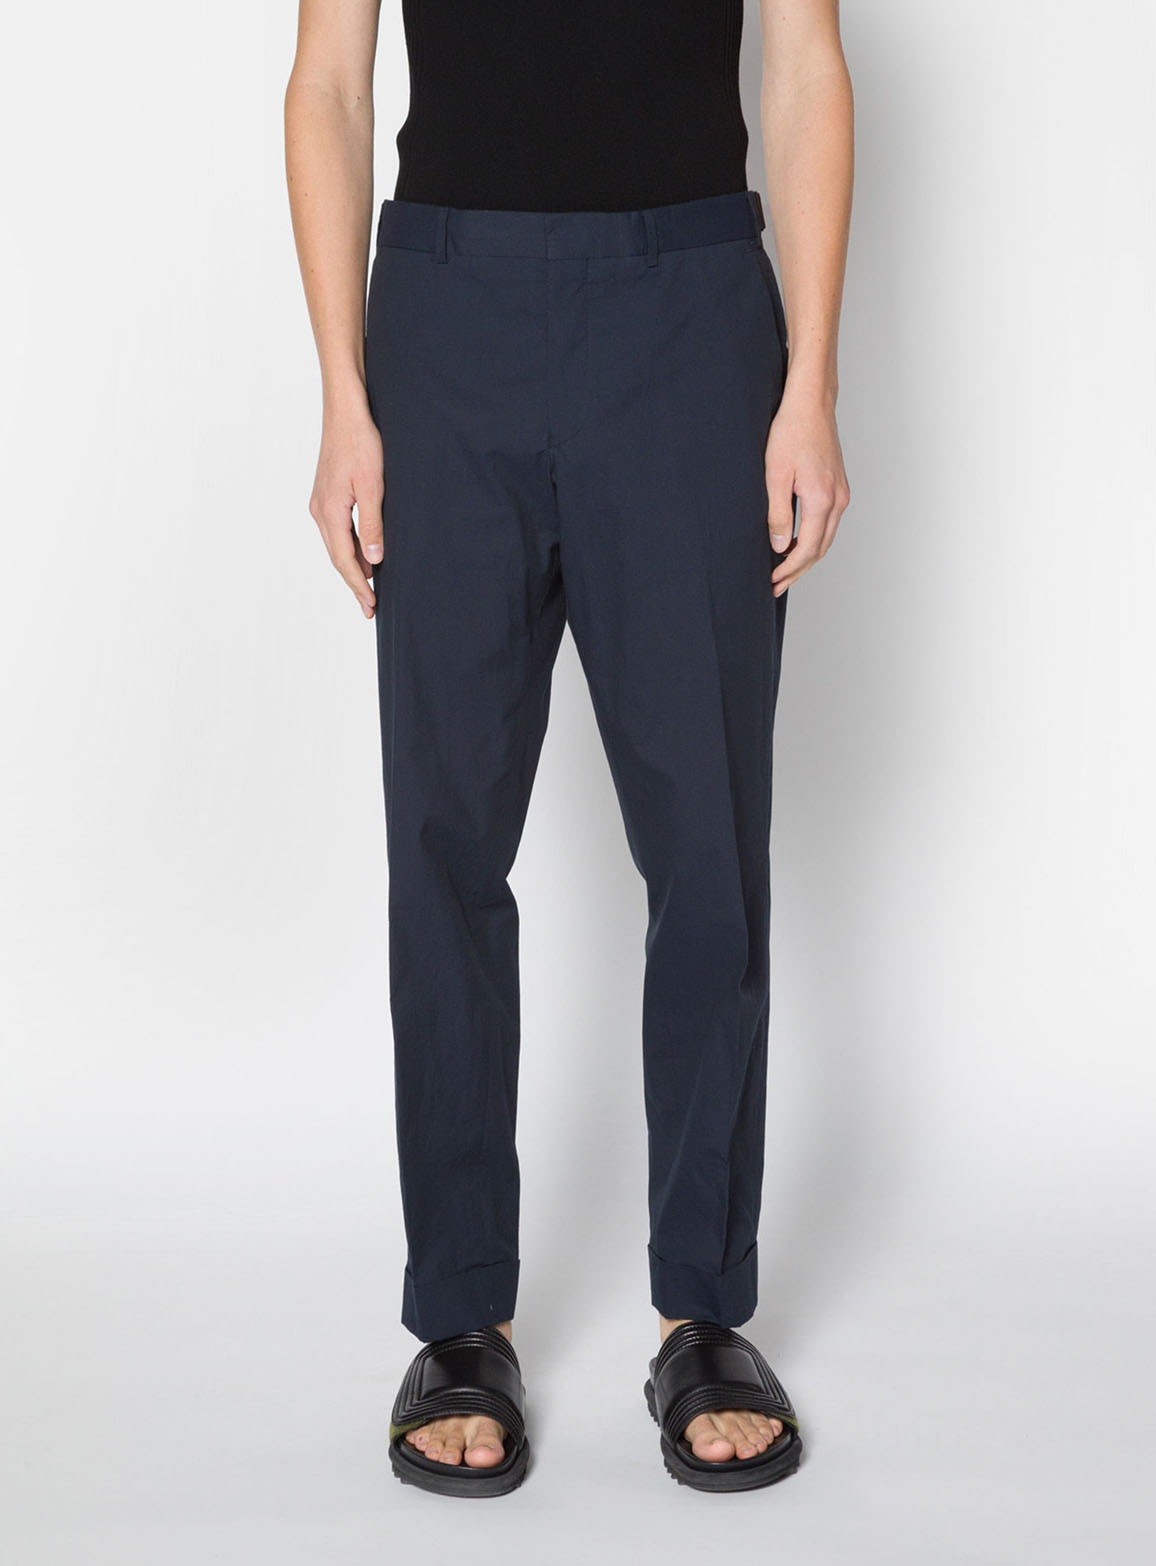 Philip tapered trousers